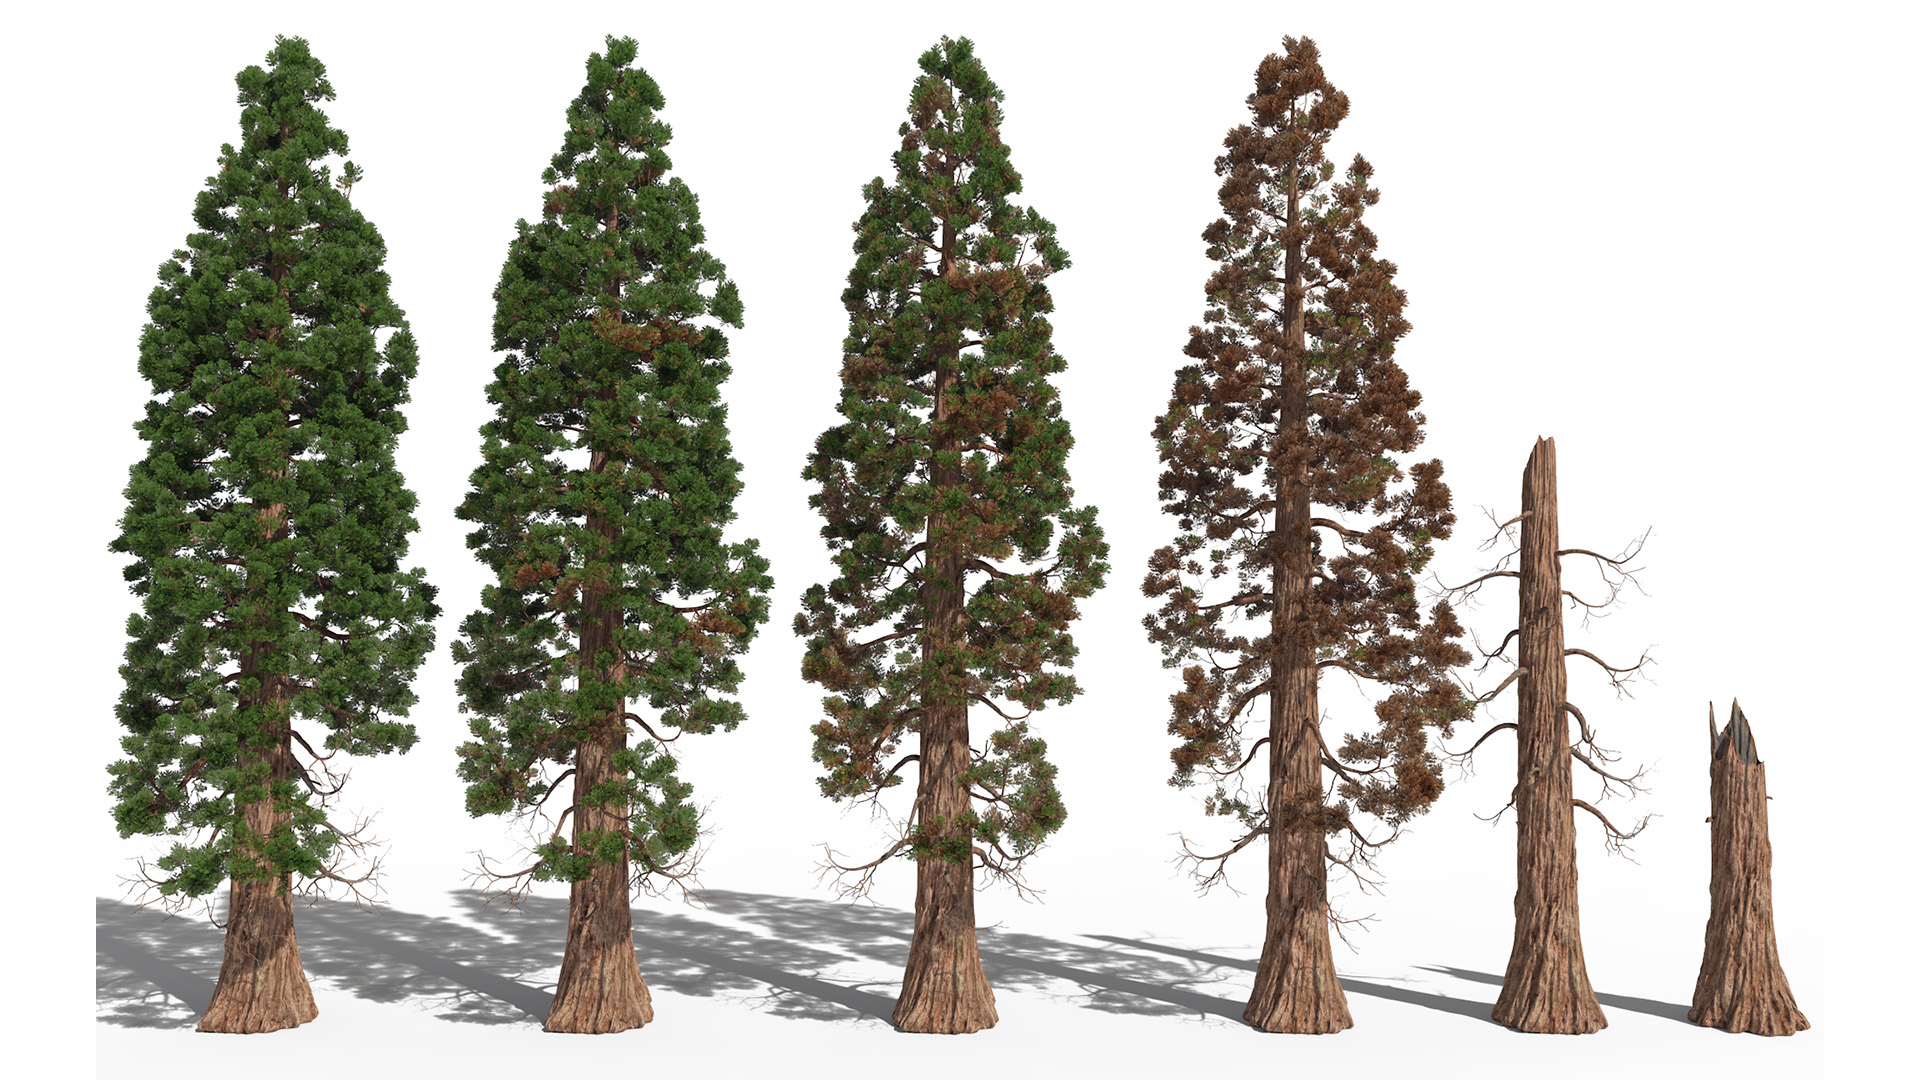 3D model of the Giant sequoia Sequoiadendron giganteum health variations